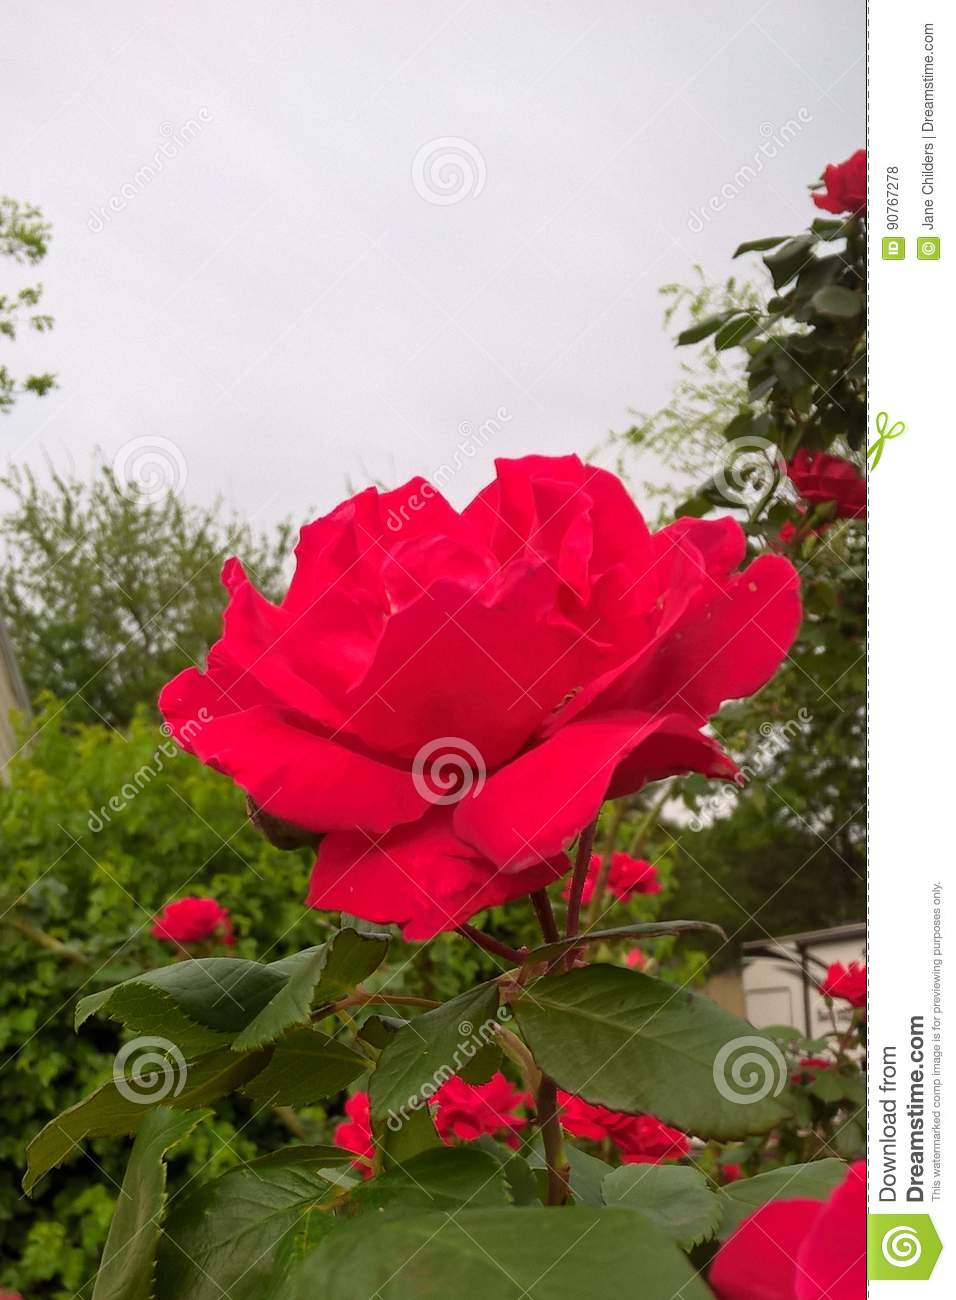 red rose stock photo  image of flowers  landscaping  rose